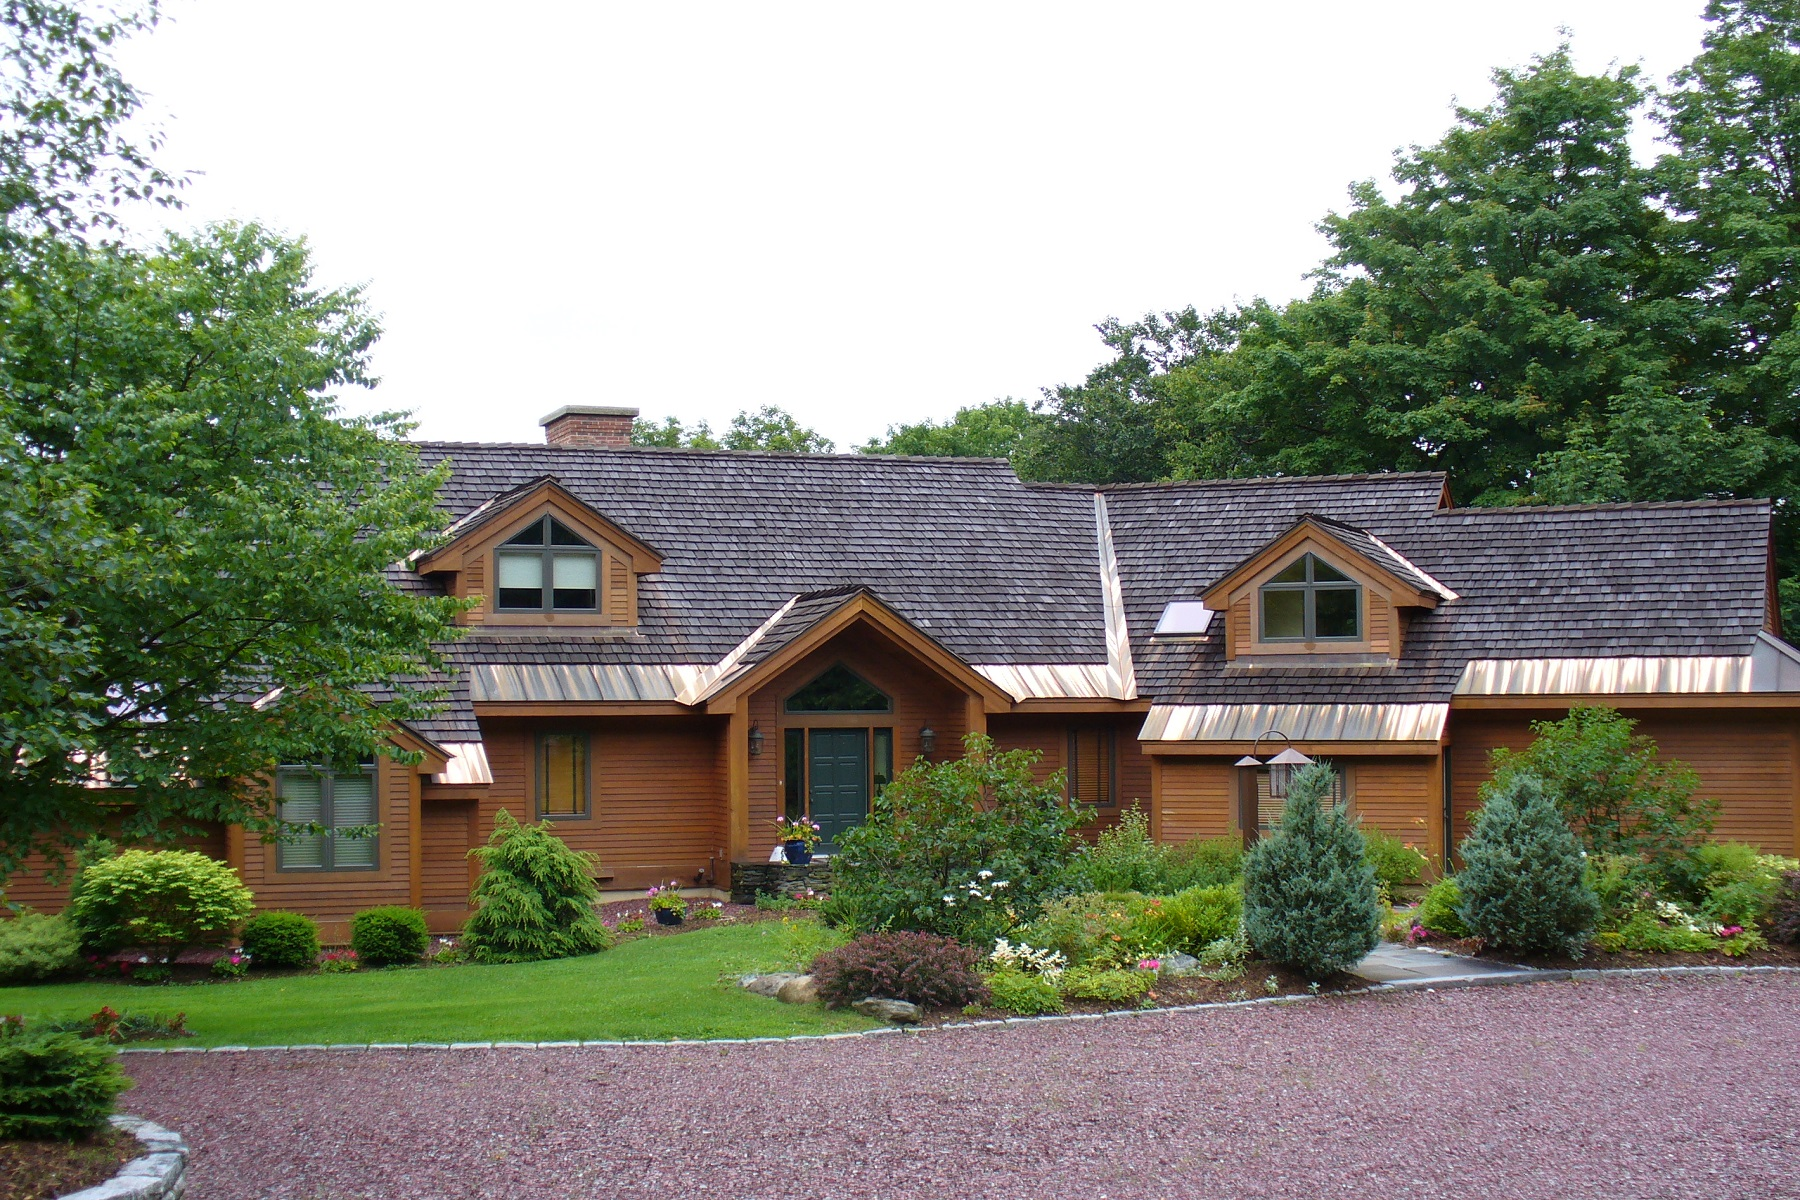 Single Family Home for Sale at High Ridge Estate 343 High Ridge Rd Killington, Vermont, 05751 United States